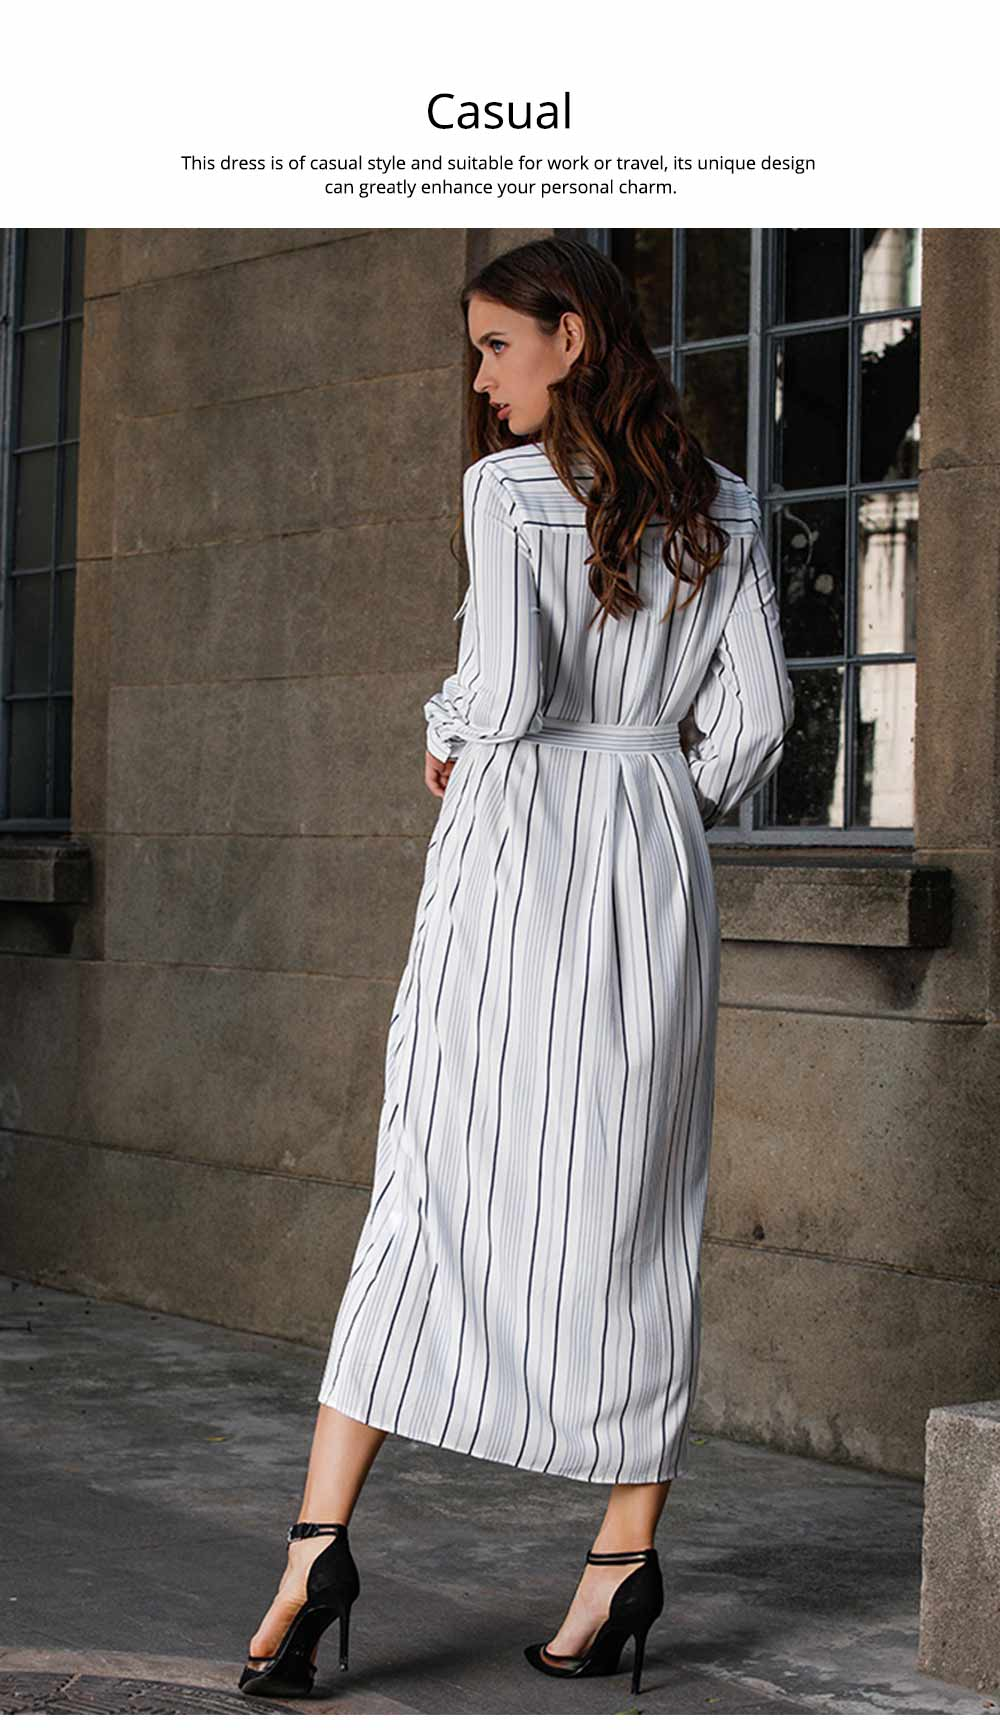 Spring Autumn Dress for Women, Long Sleeve Pocket Lace-up Long Dress, Fashion Stripe Casual A-line Lattice Skirt 2019 5